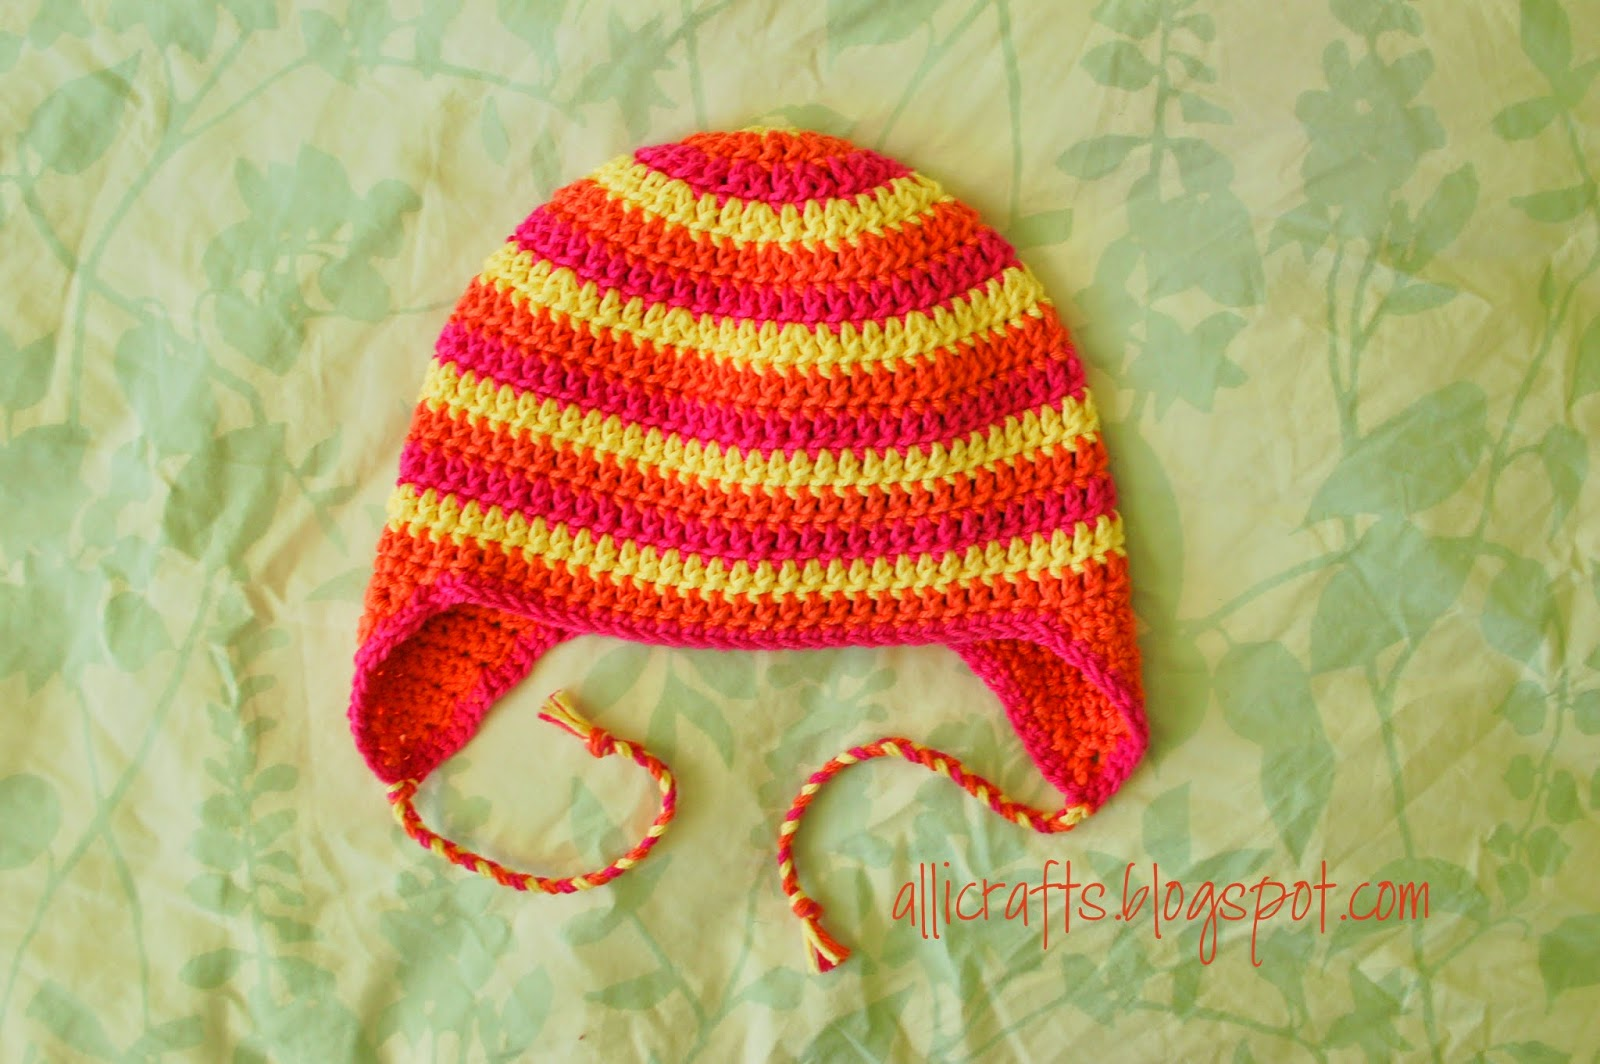 Alli Crafts: Free Pattern: Earflap Hat - Youth/Adult Small